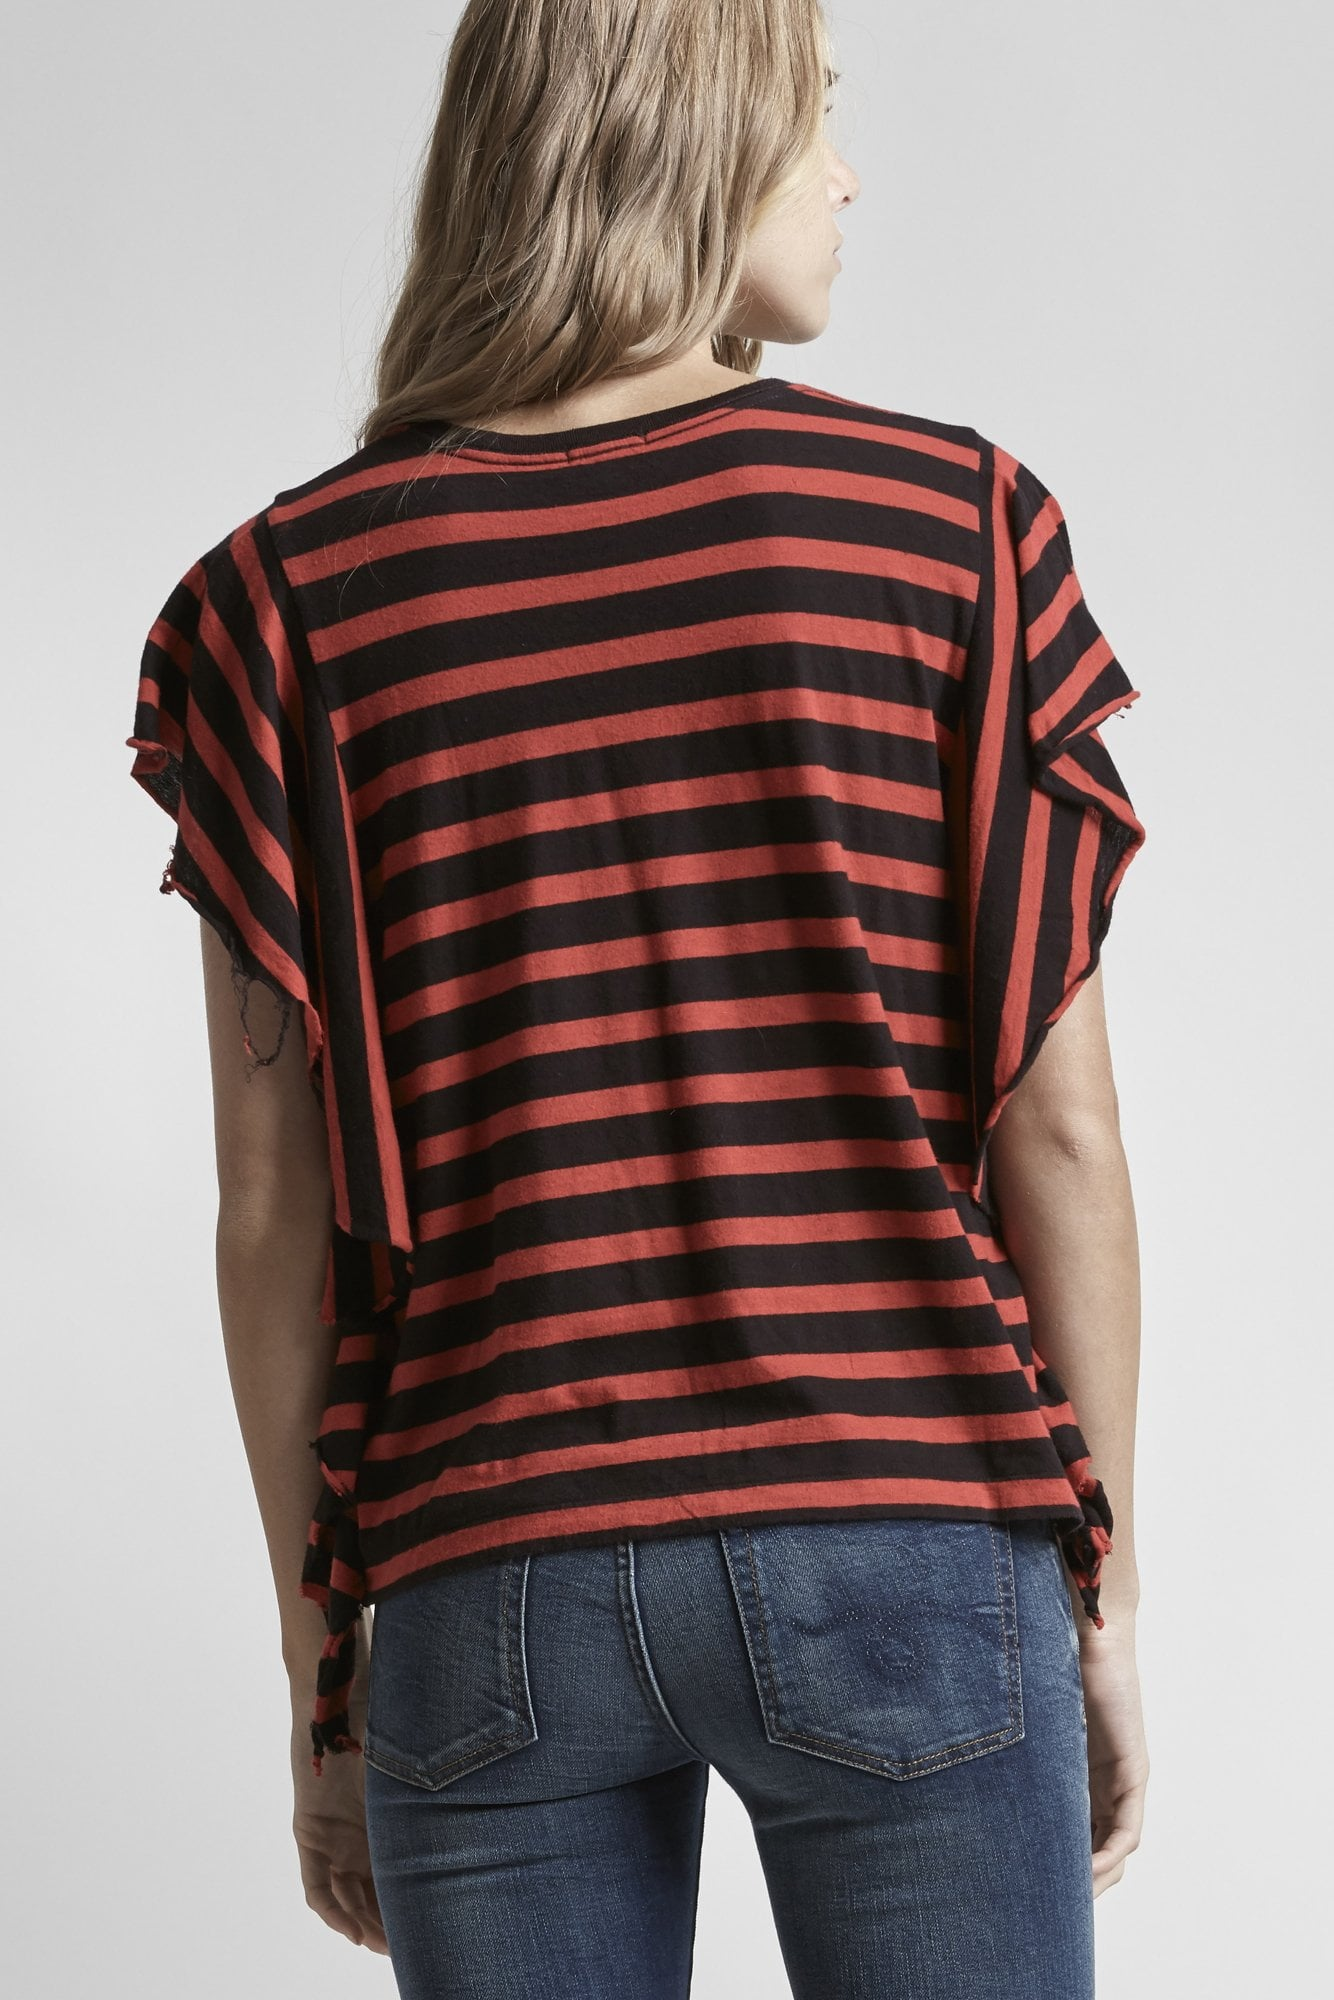 Striped Flutter T - Red w/ Black